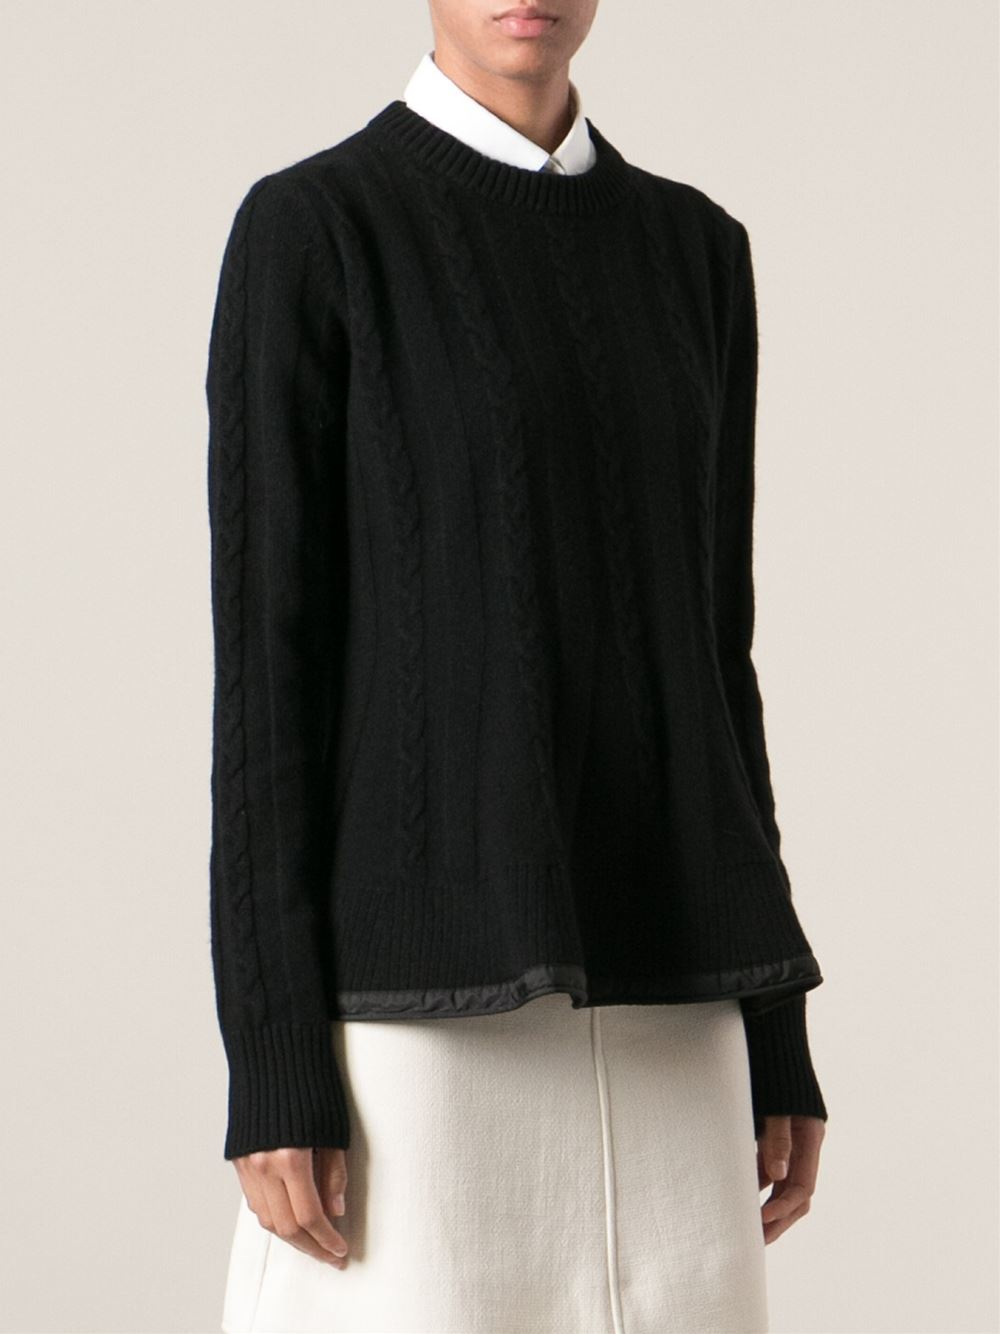 Moncler Aran Knit Sweater in Black | Lyst